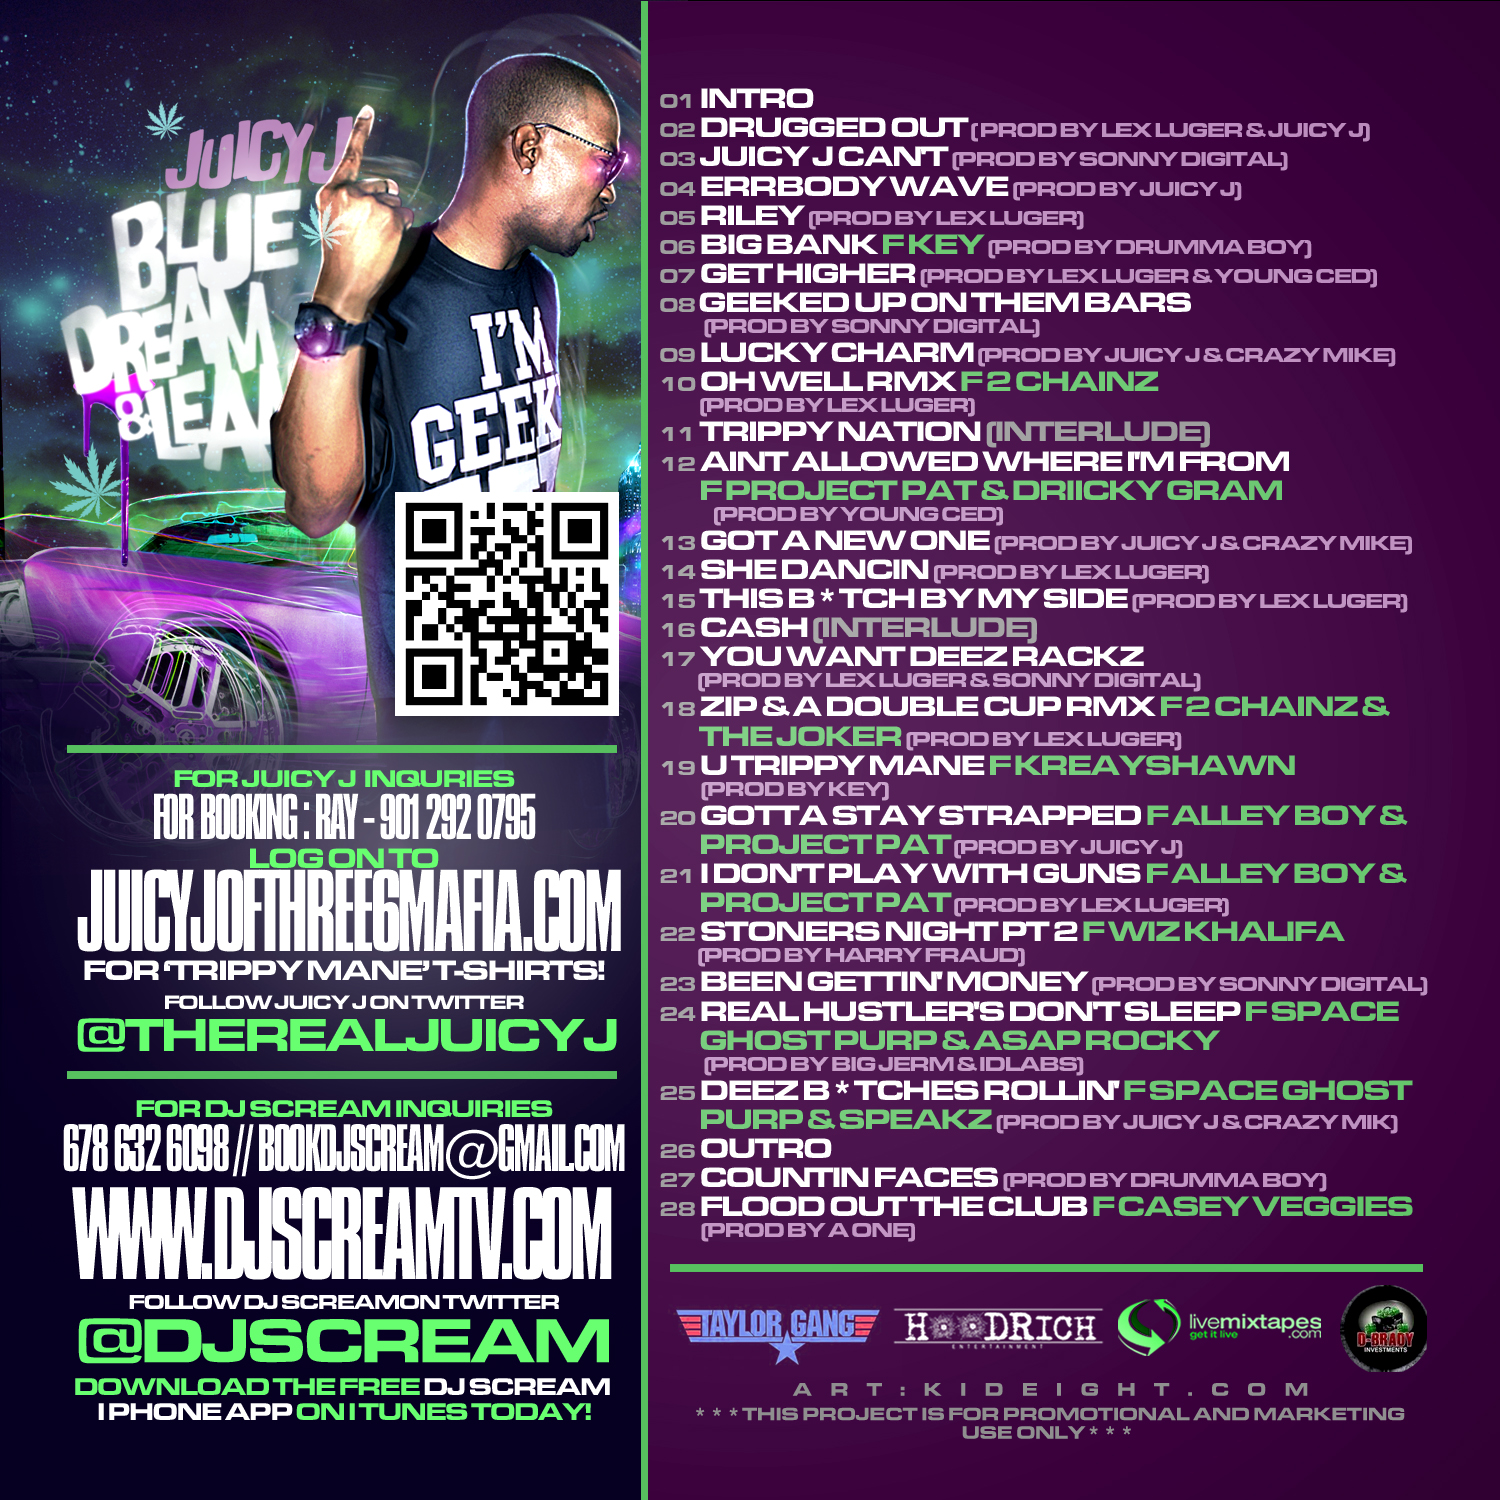 Juicy J Blue Dream Amp Lean Mixtape Hosted By Dj Scream